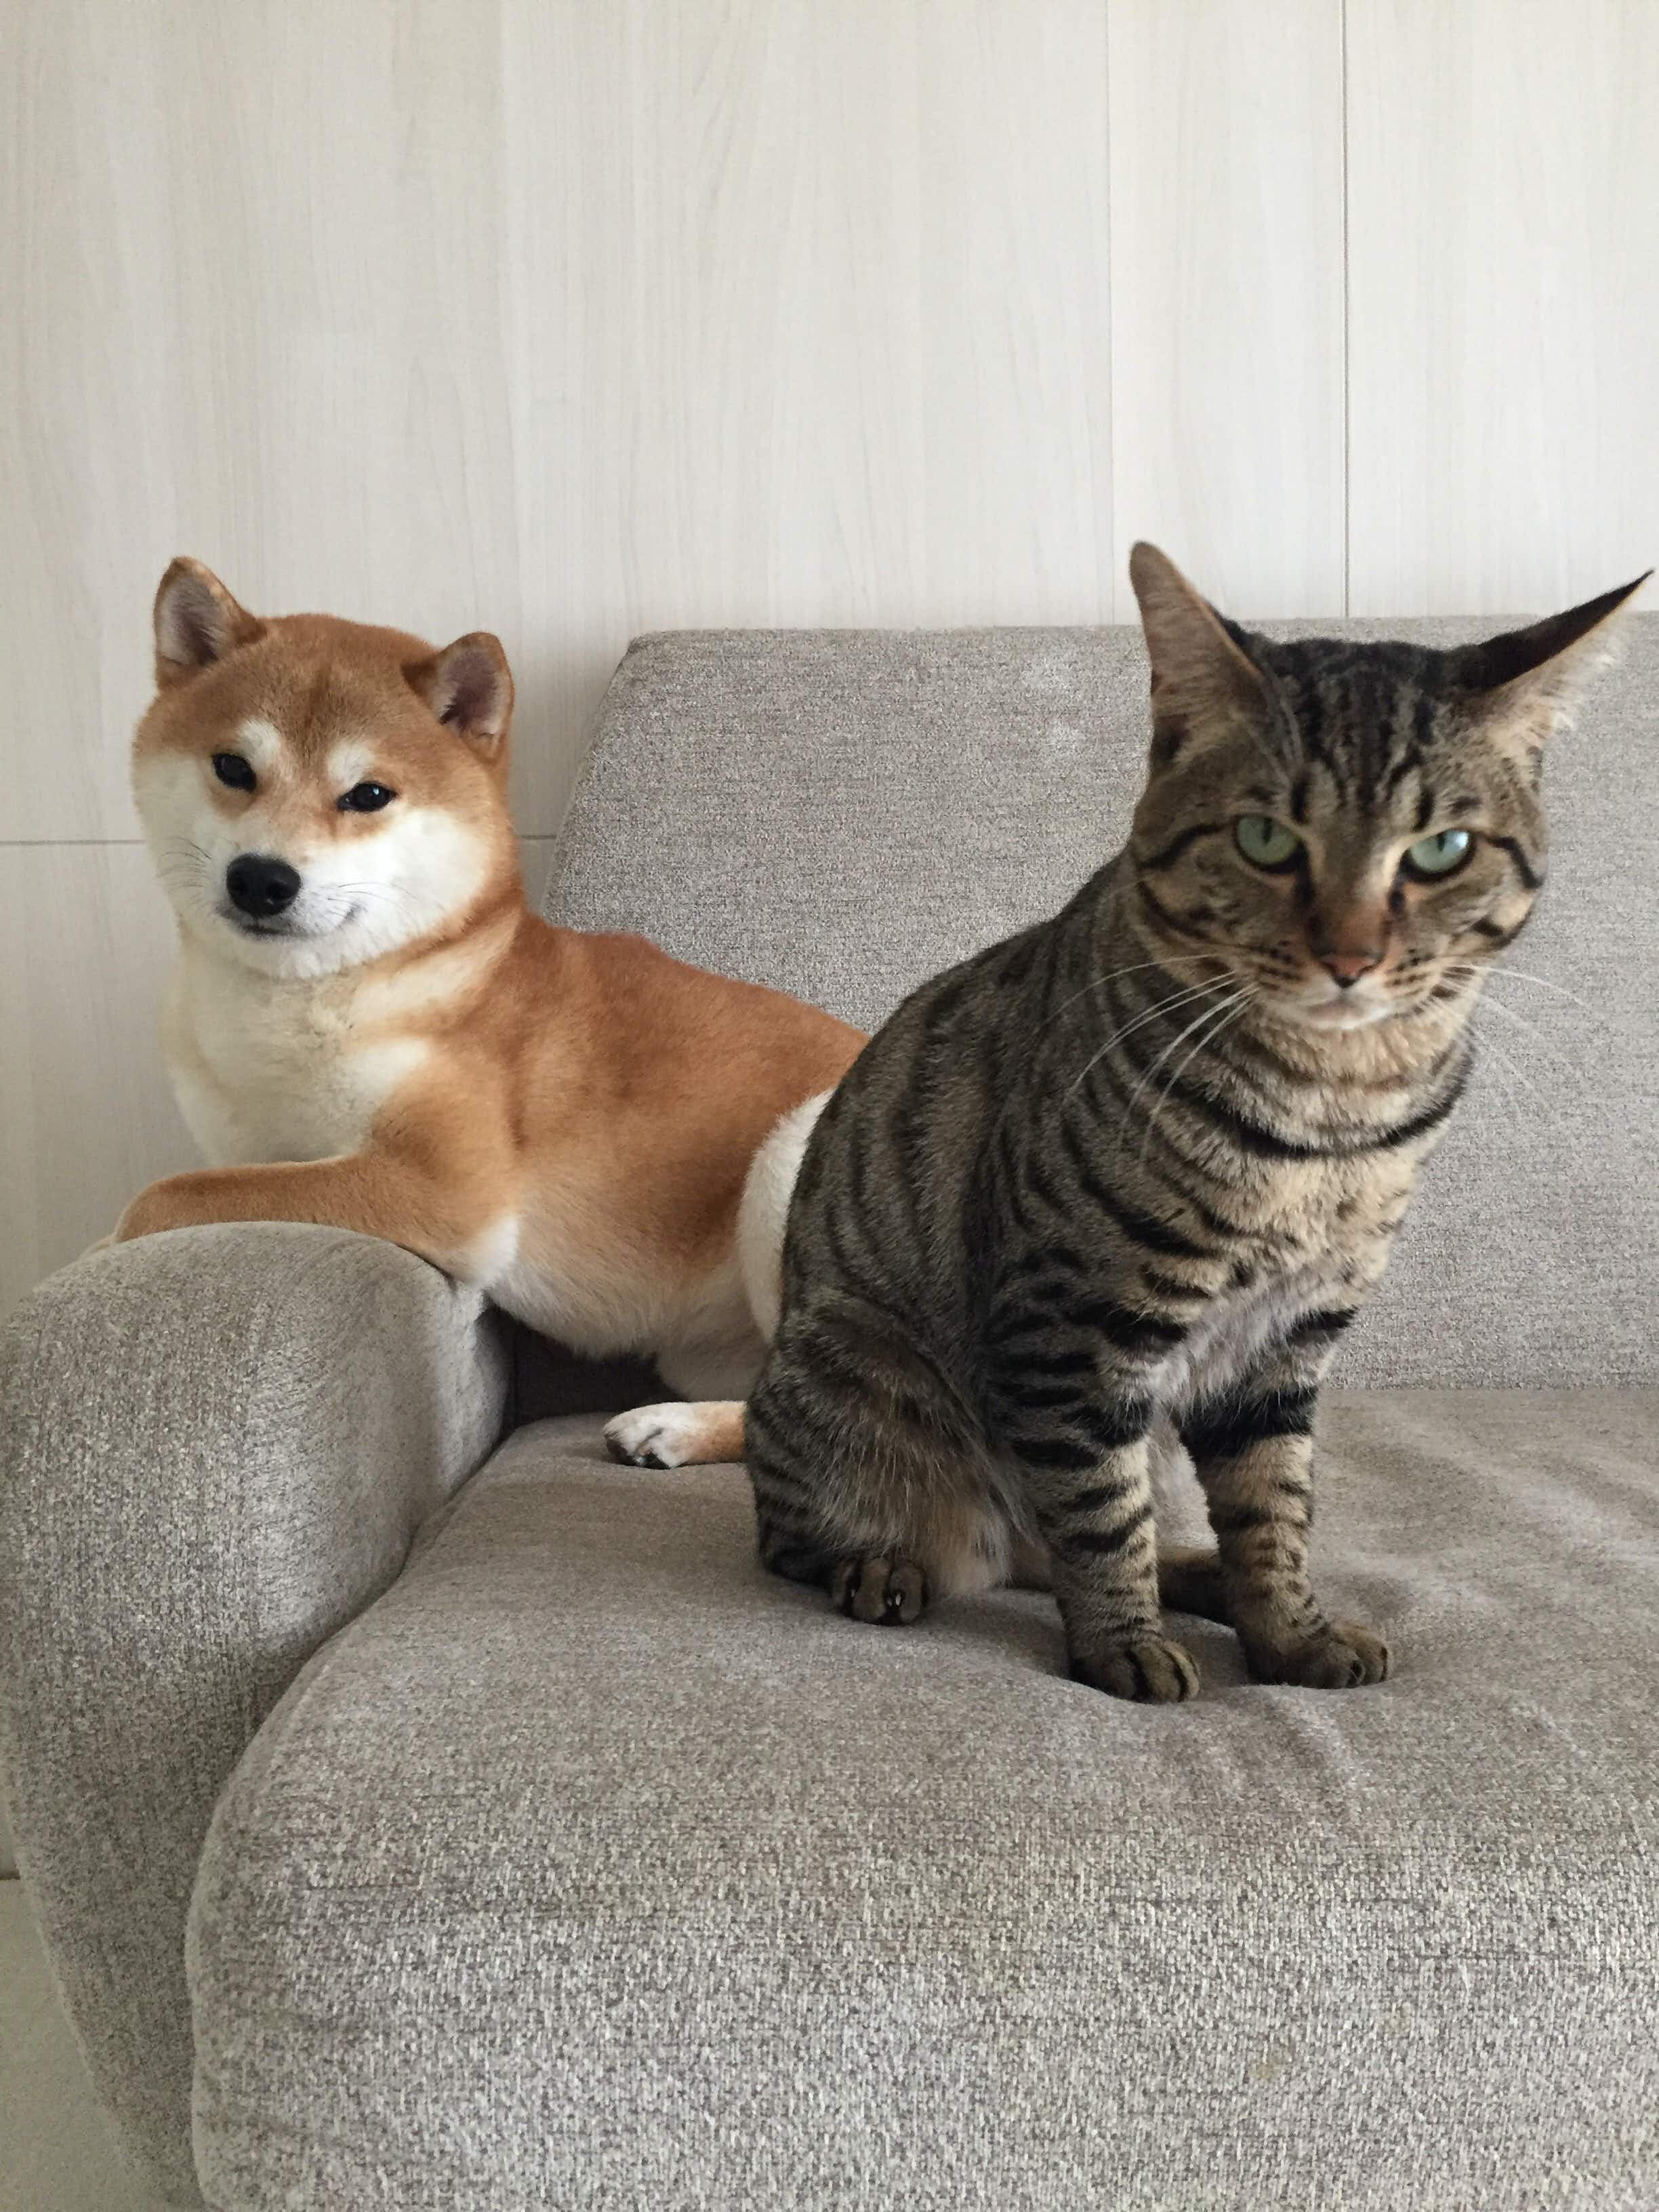 This unlikely friendship between a cat and dog in Tokyo has gone viral with thousands of Instagram followers